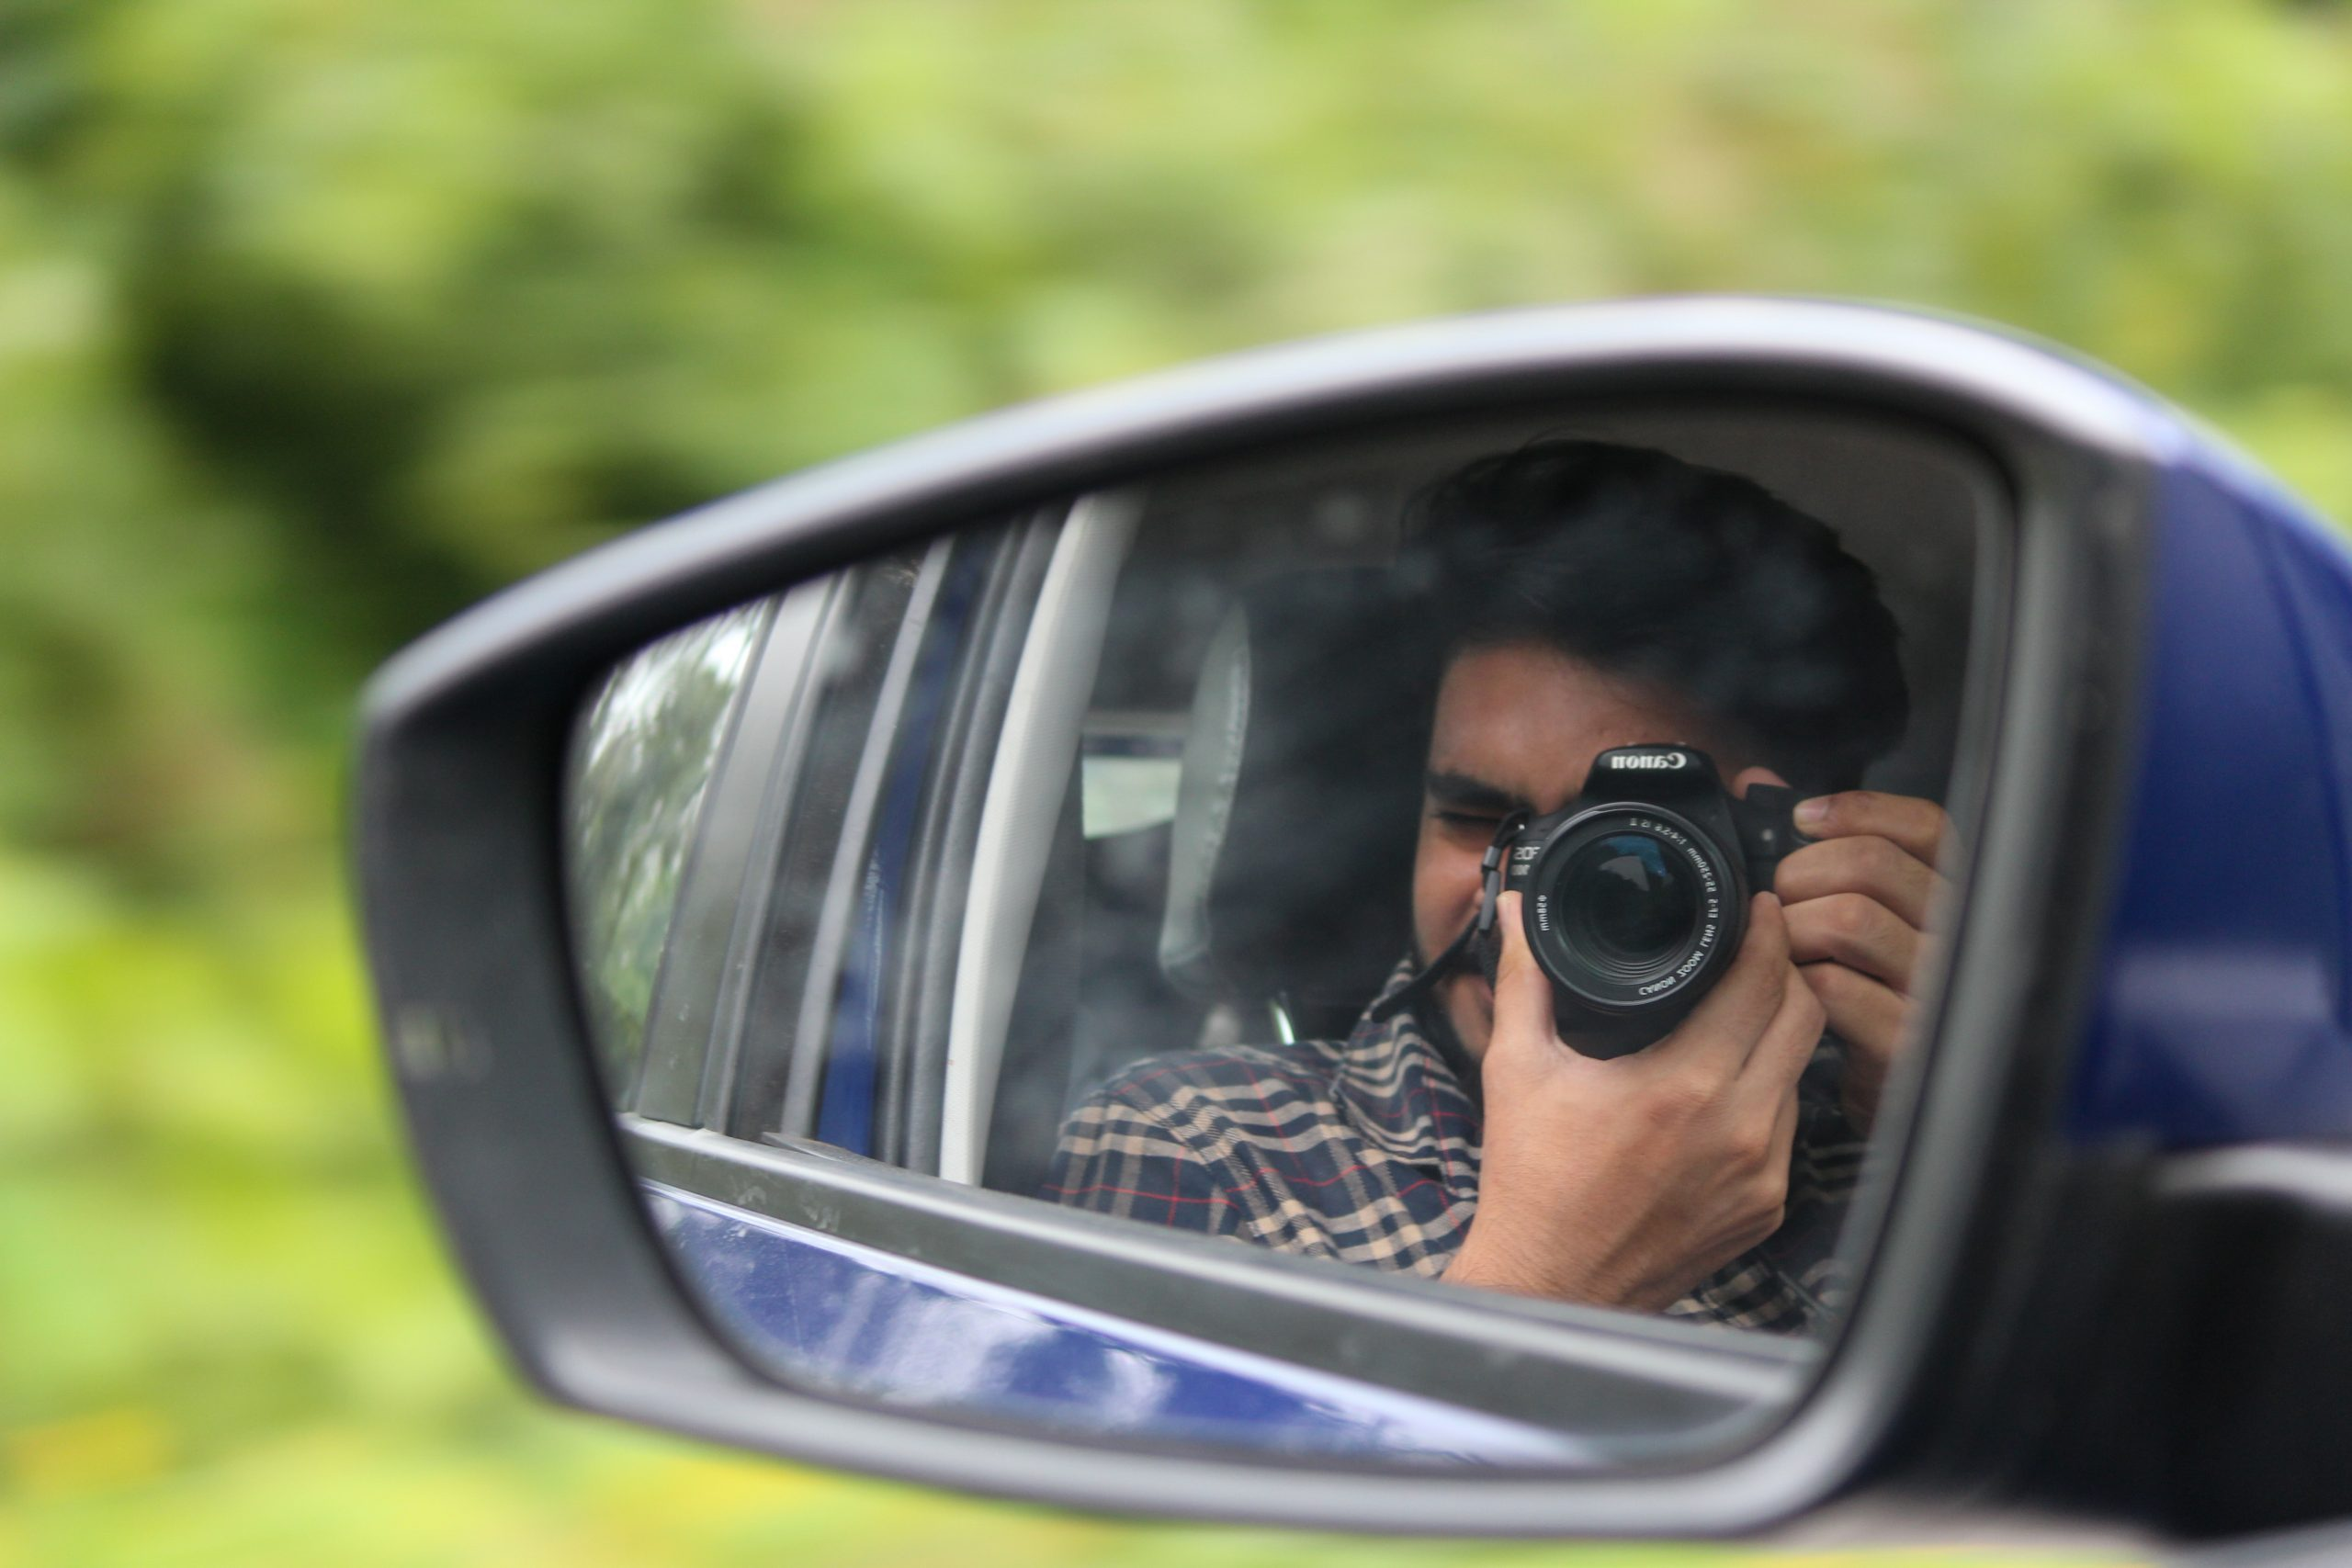 A photographer capturing through back mirror